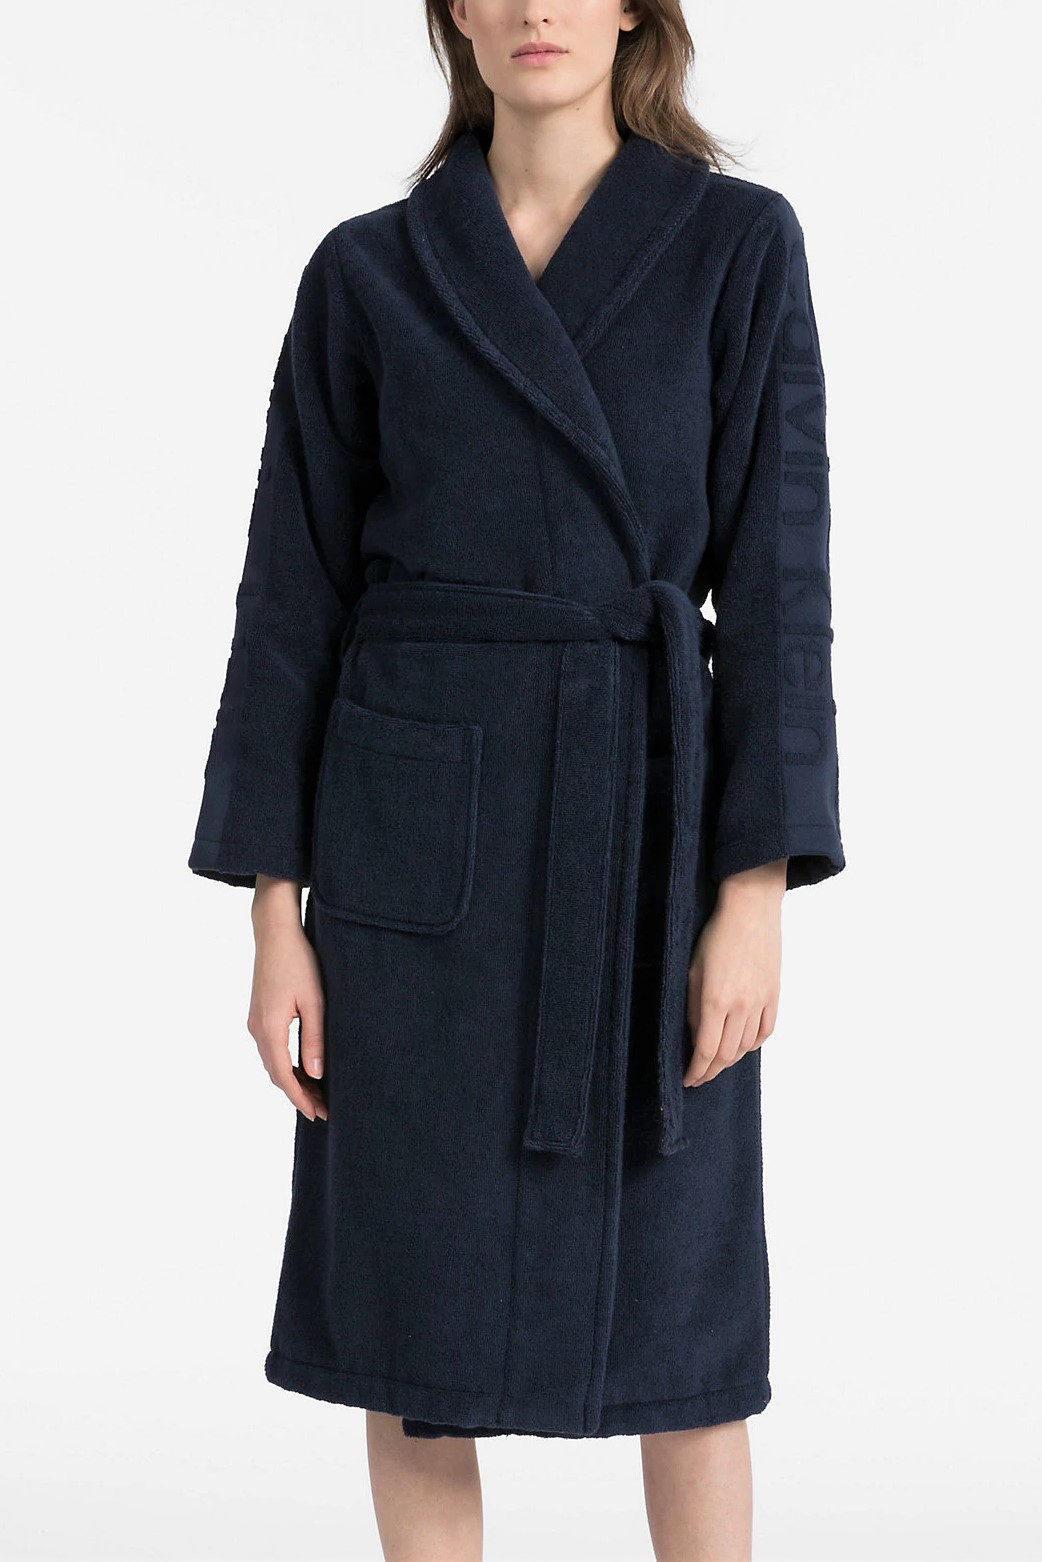 Calvin Klein Dark Blue Uni Bathrobe